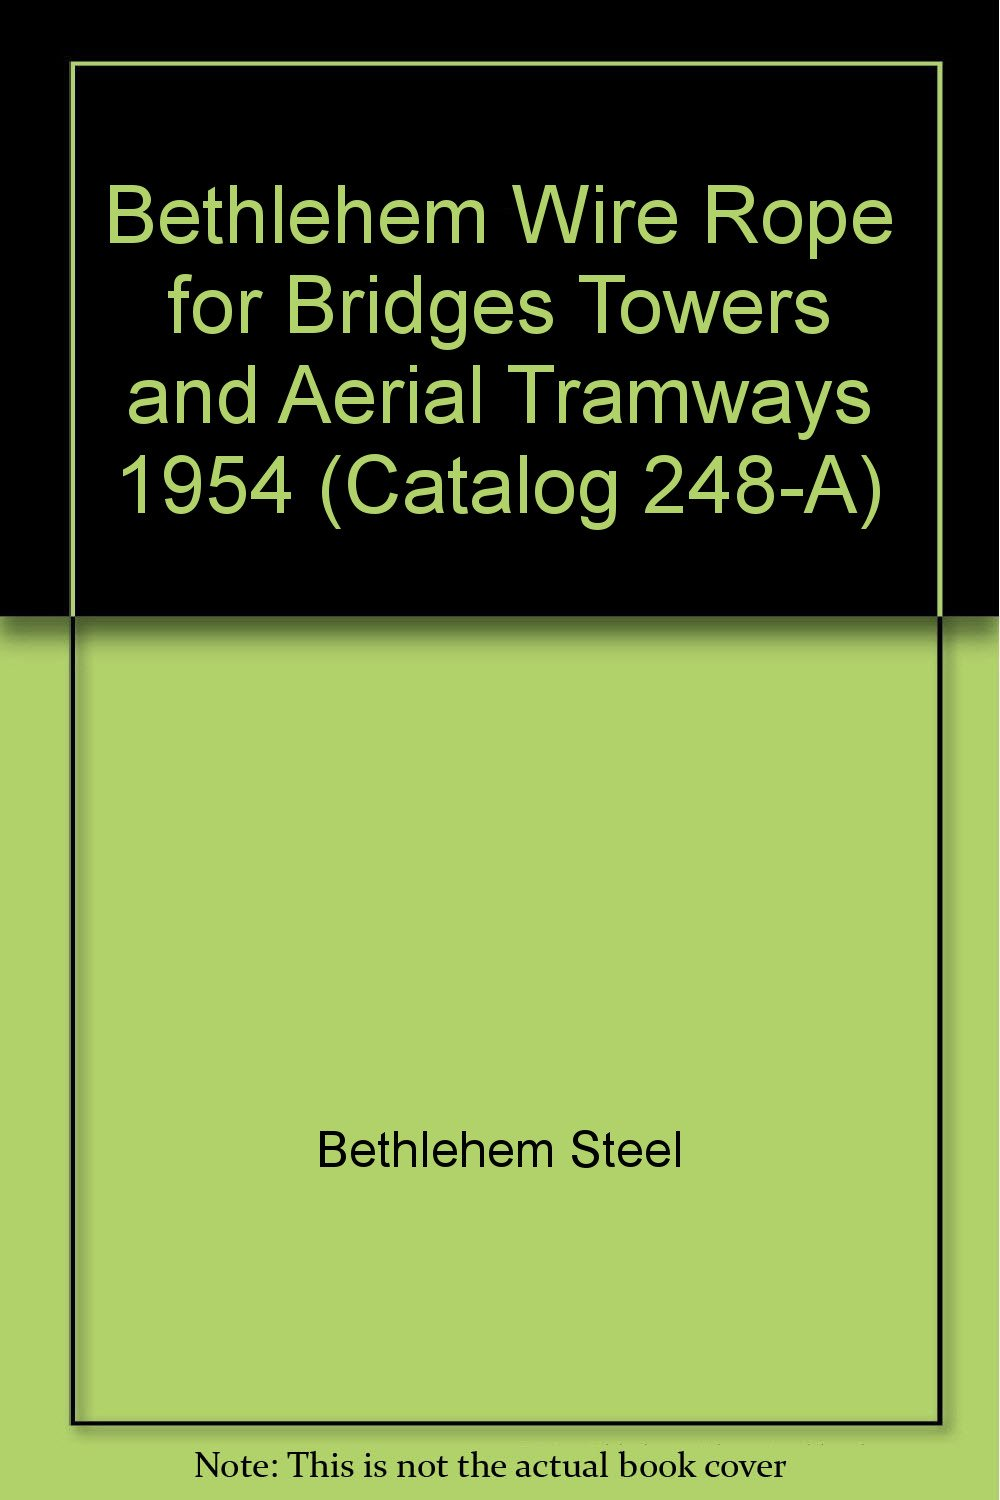 Bethlehem Wire Rope for Bridges Towers and Aerial Tramways 1954 ...